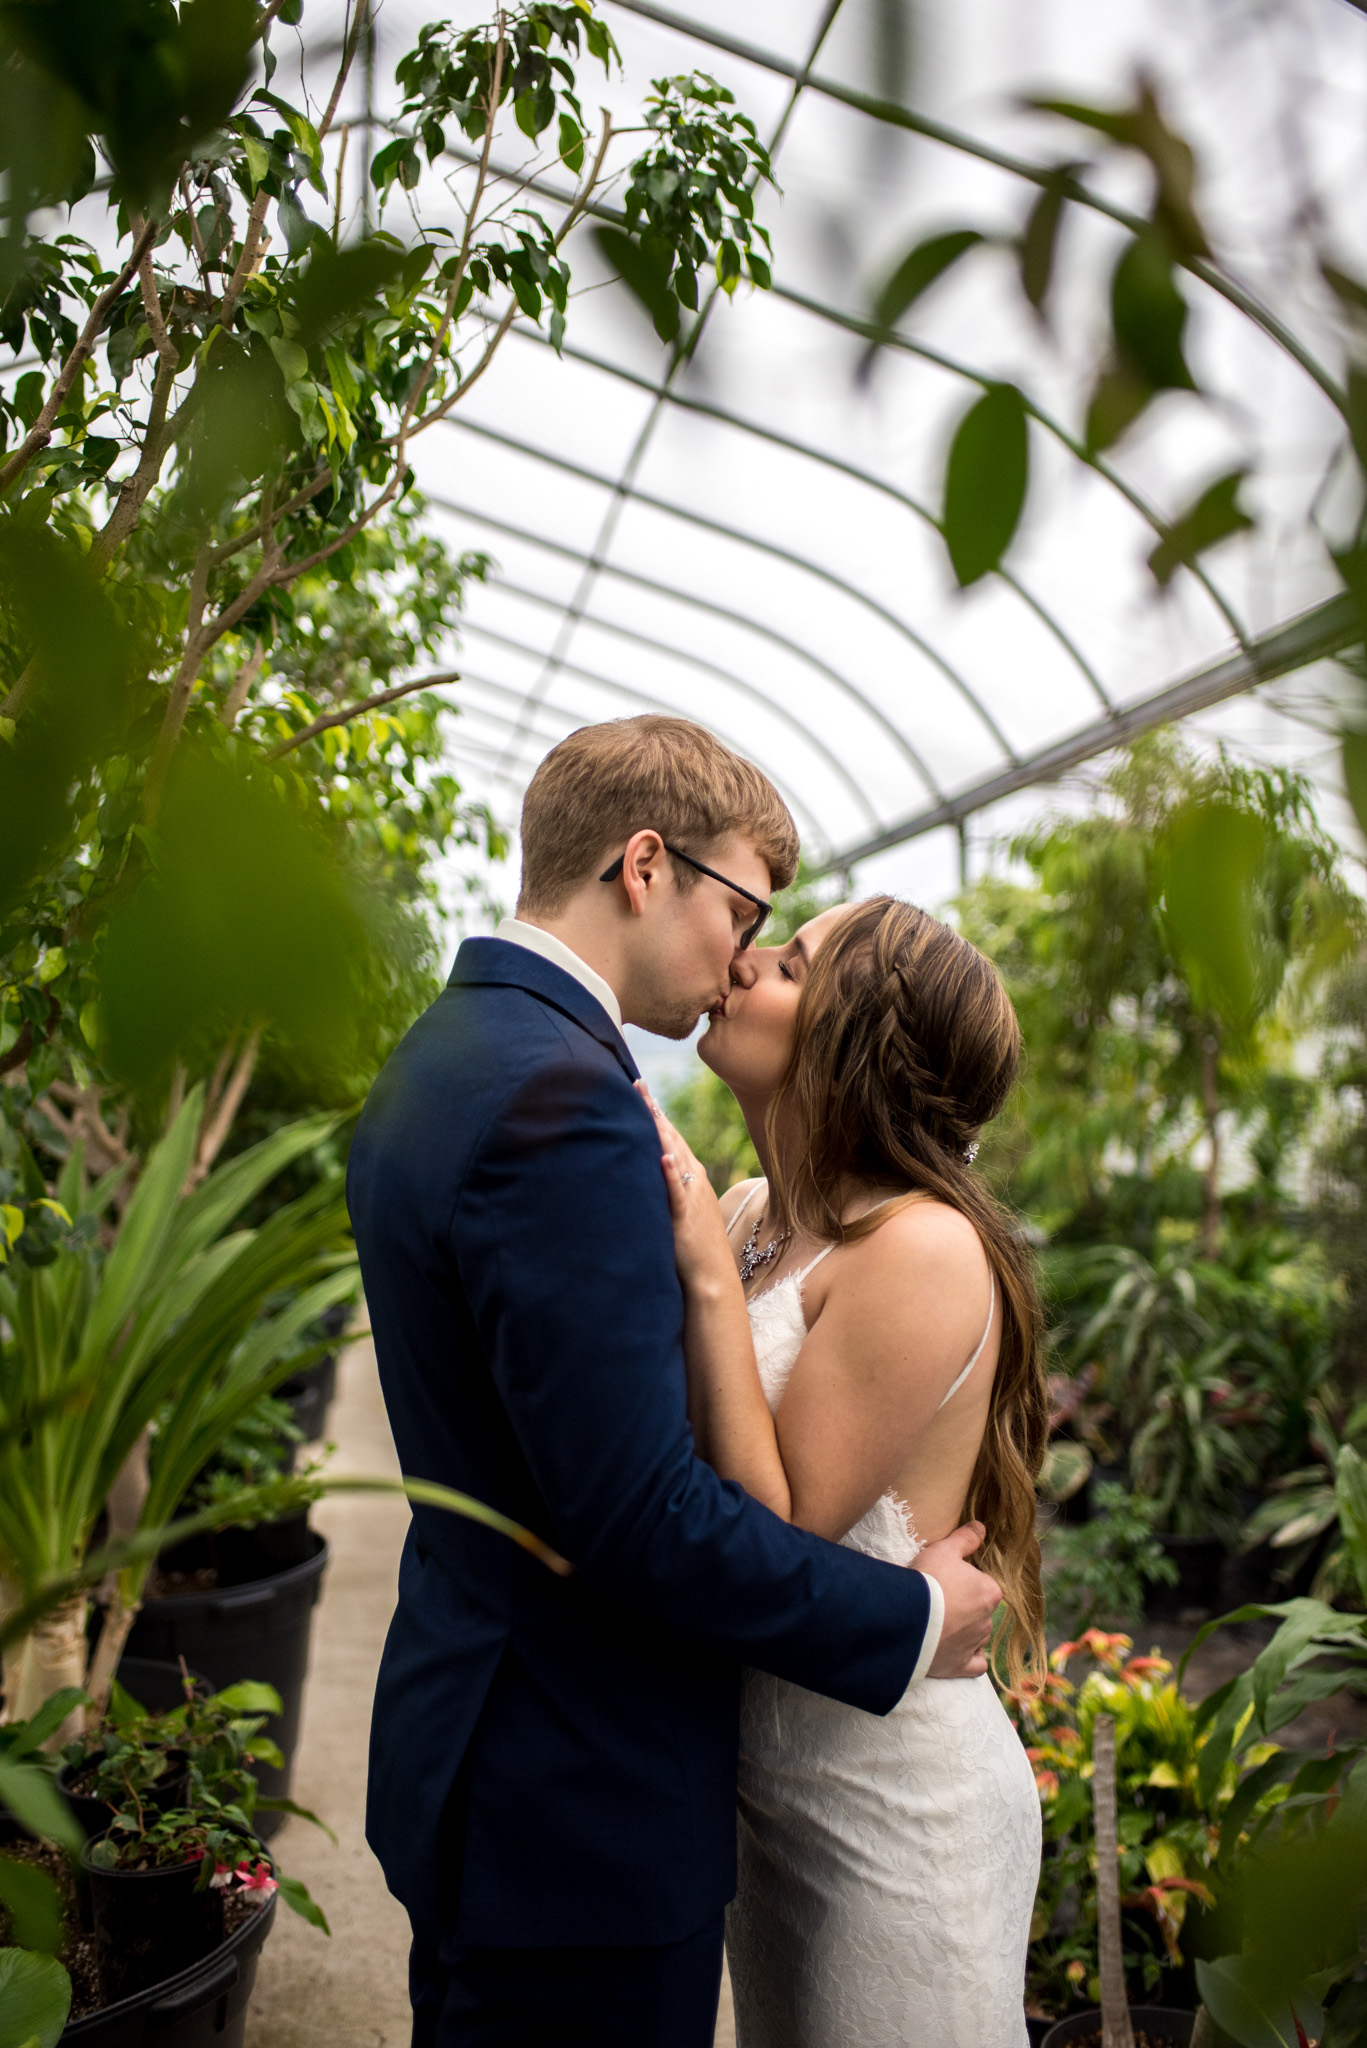 Bride and groom kissing in a greenhouse at Woodbridge Ponds